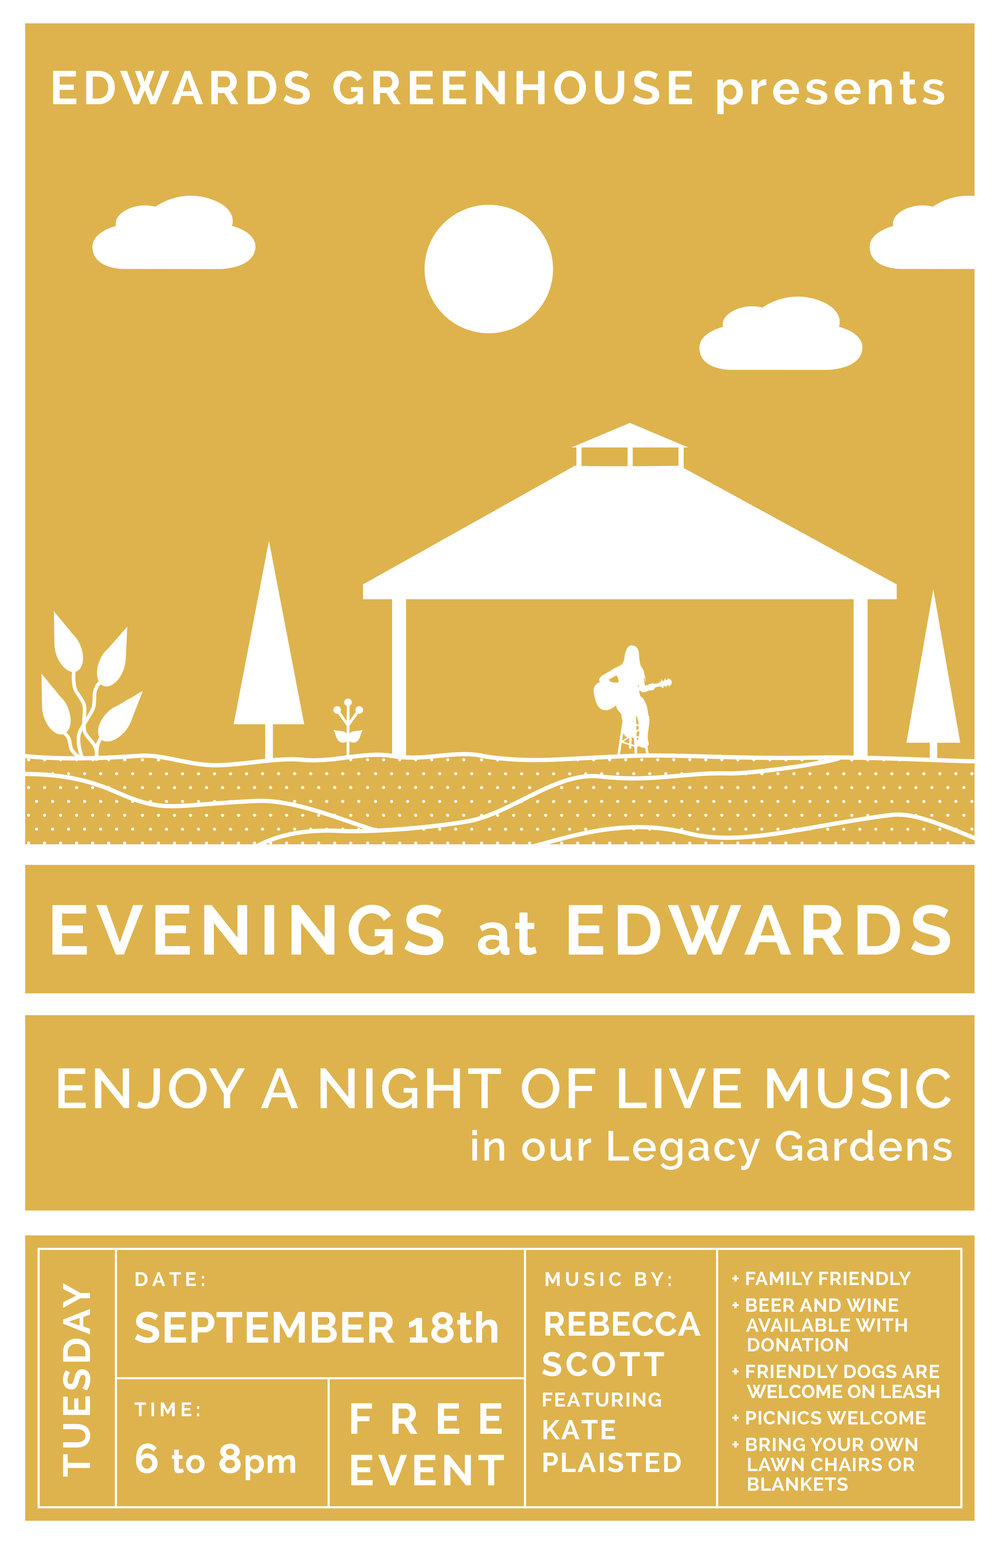 evening at edwards 2018 sept 18th.jpg